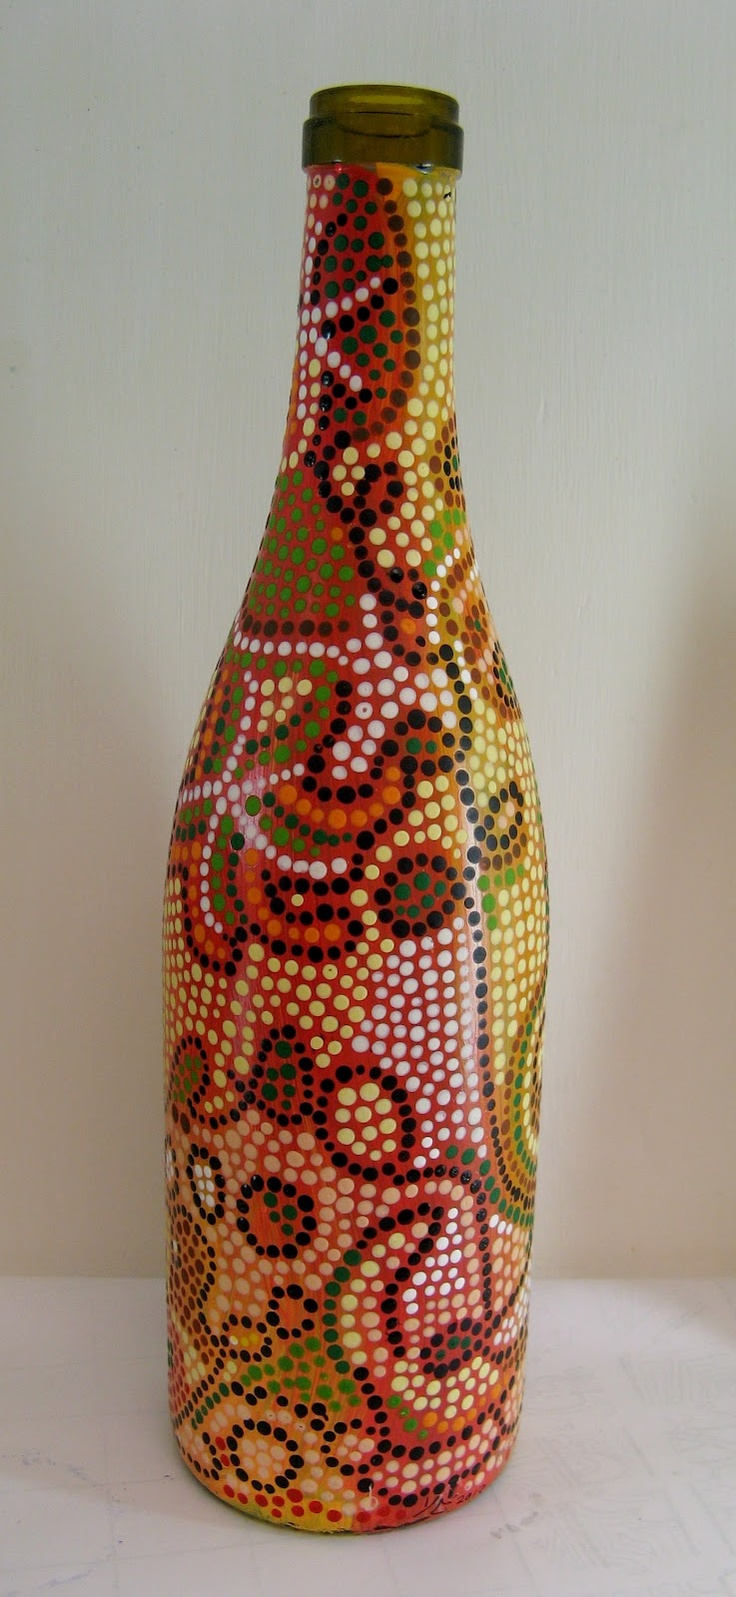 17 Best images about bottle painting on Pinterest | DIY ...